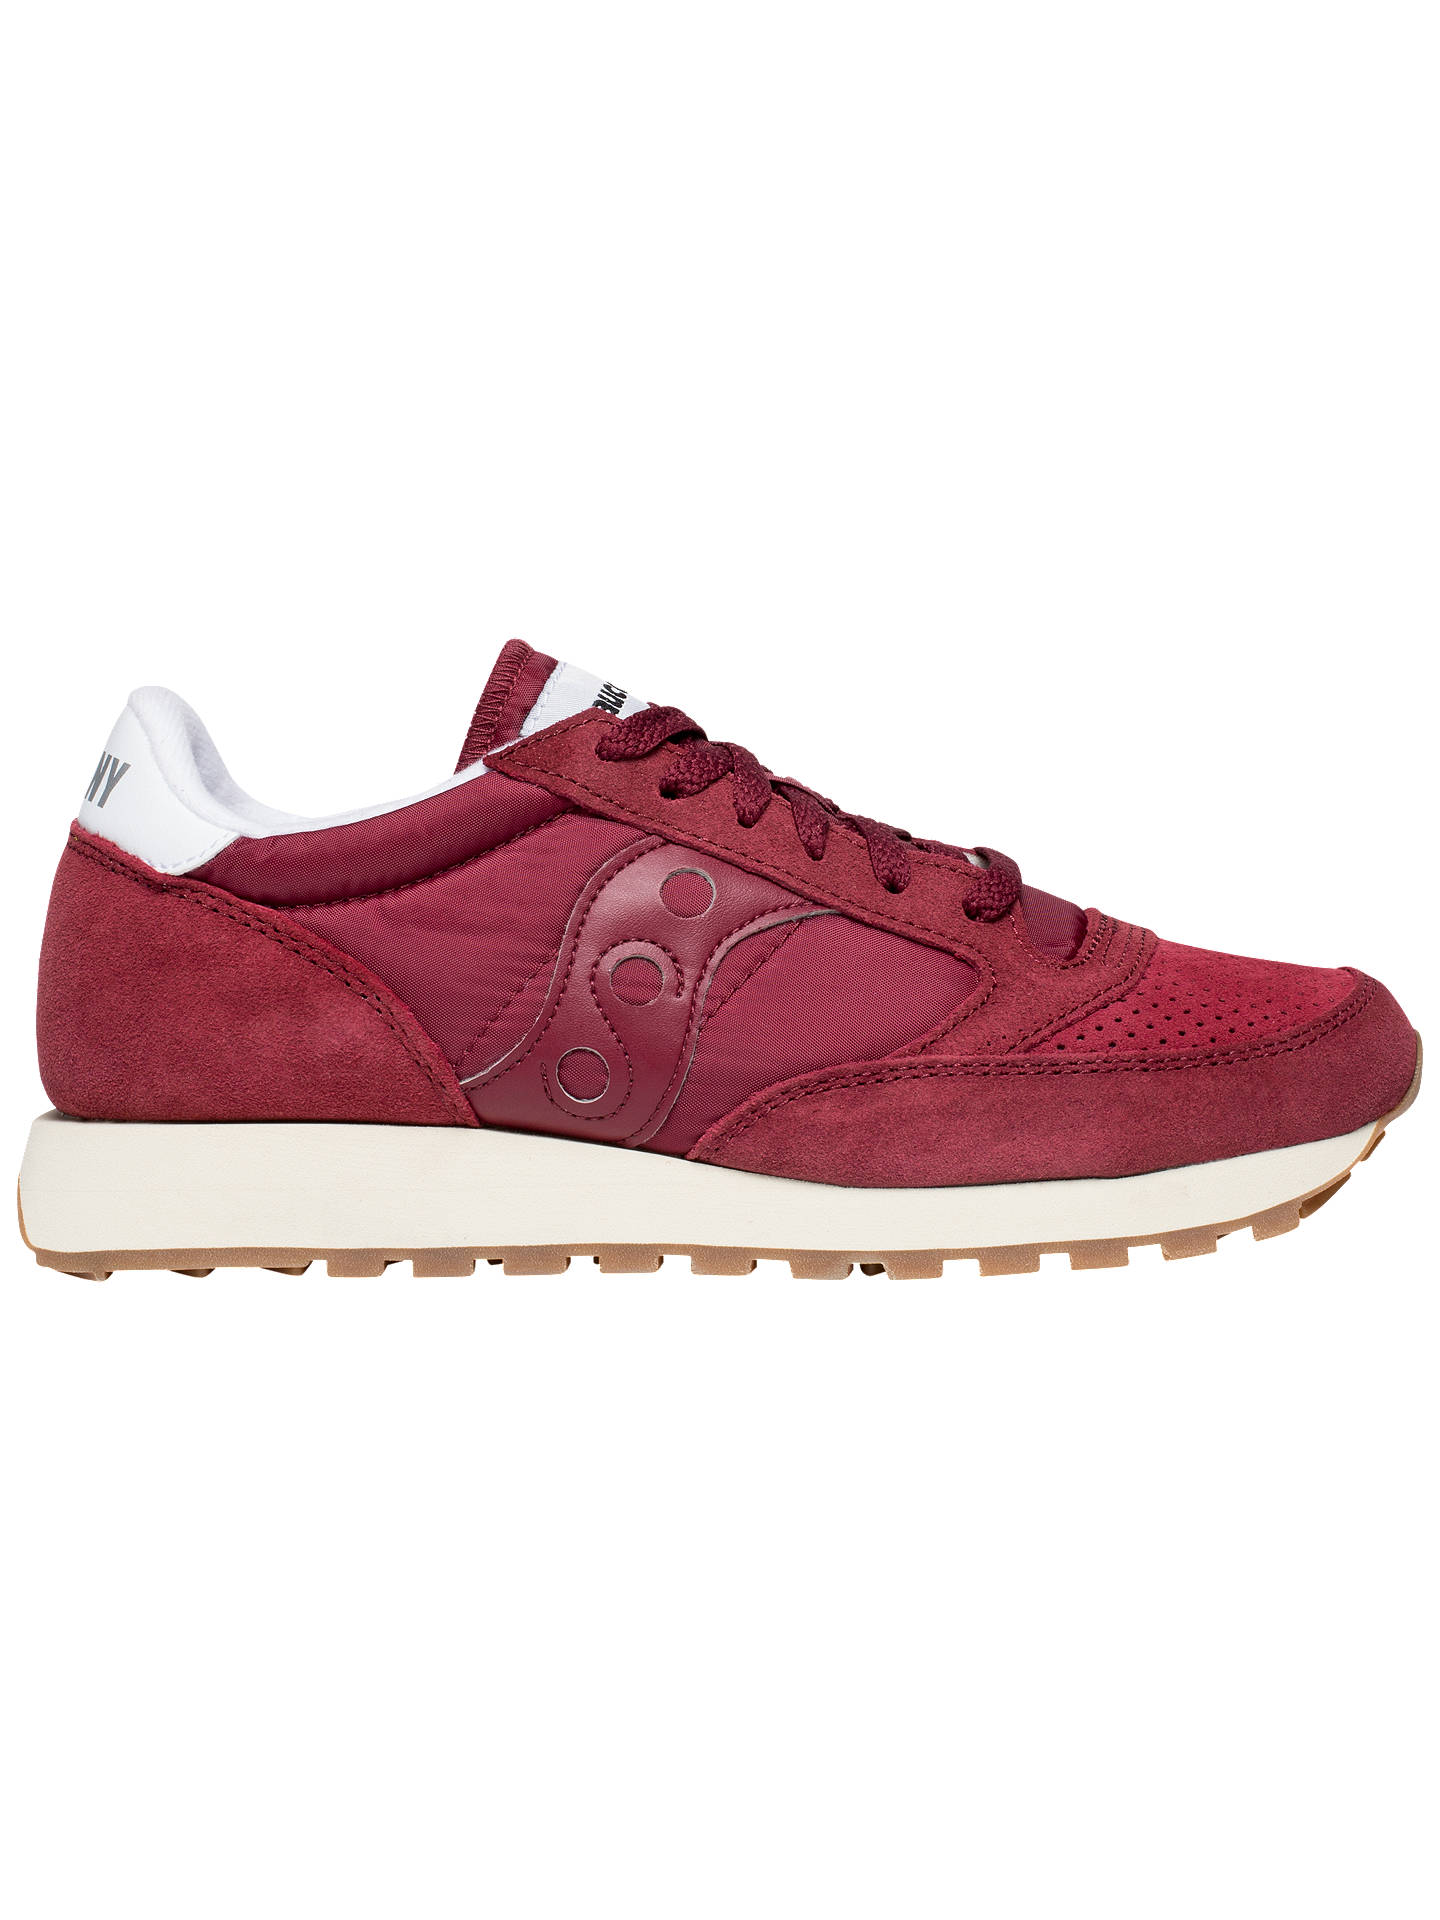 Buy Saucony Jazz Original Vintage Men's Trainers, Maroon, 9 Online at johnlewis.com